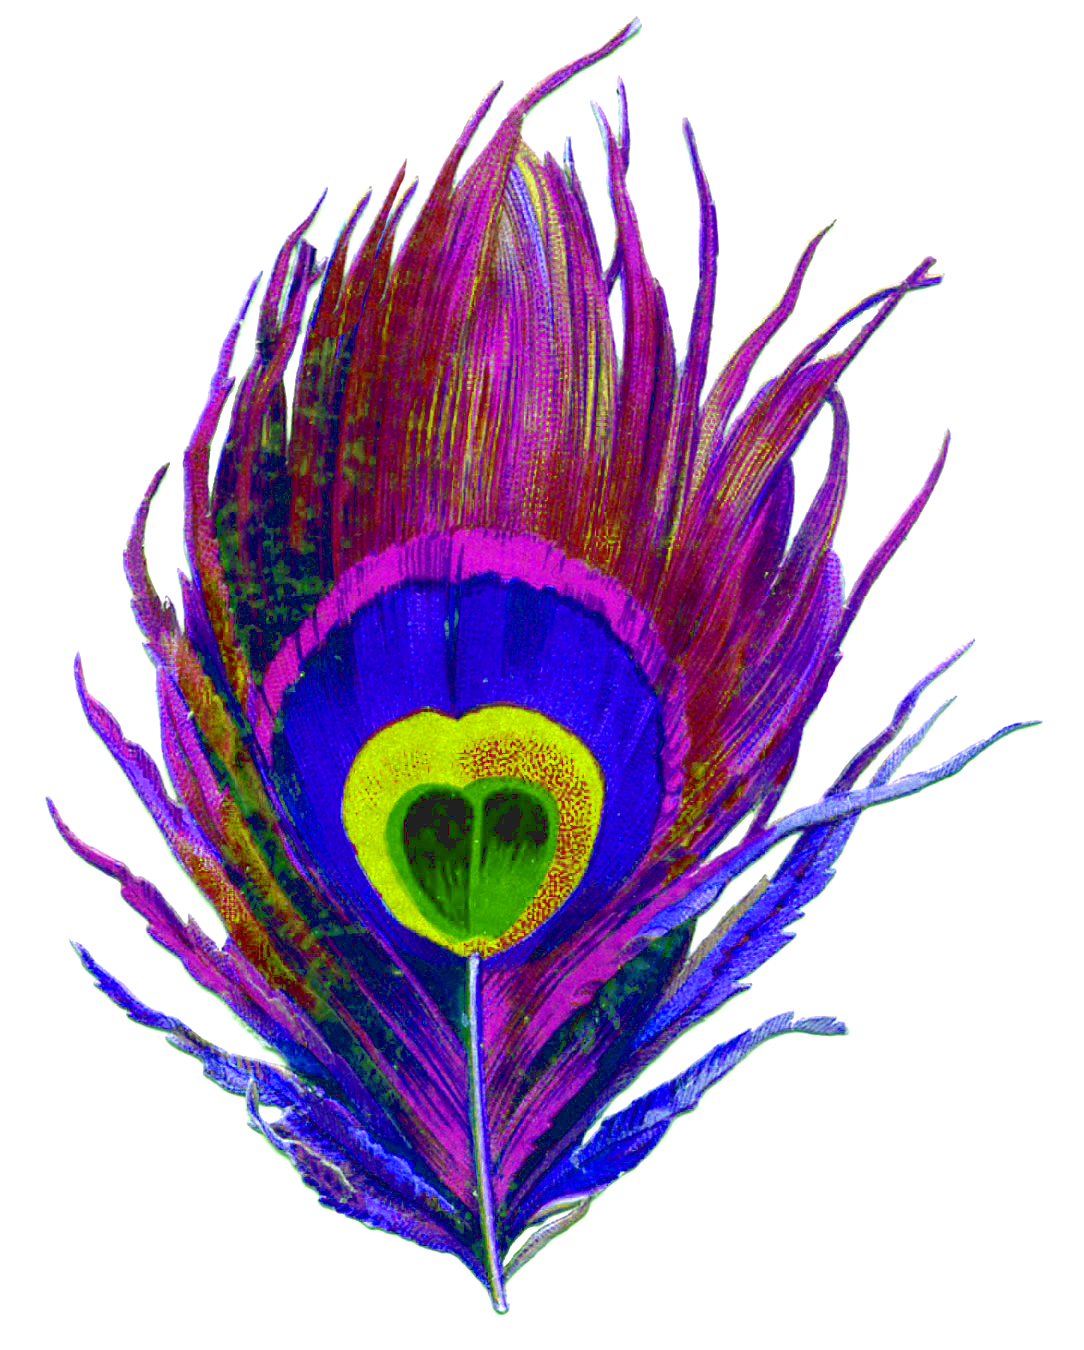 Purple, Peacock, Bird, Feather, Colorful, Eye, Designs Png 3128